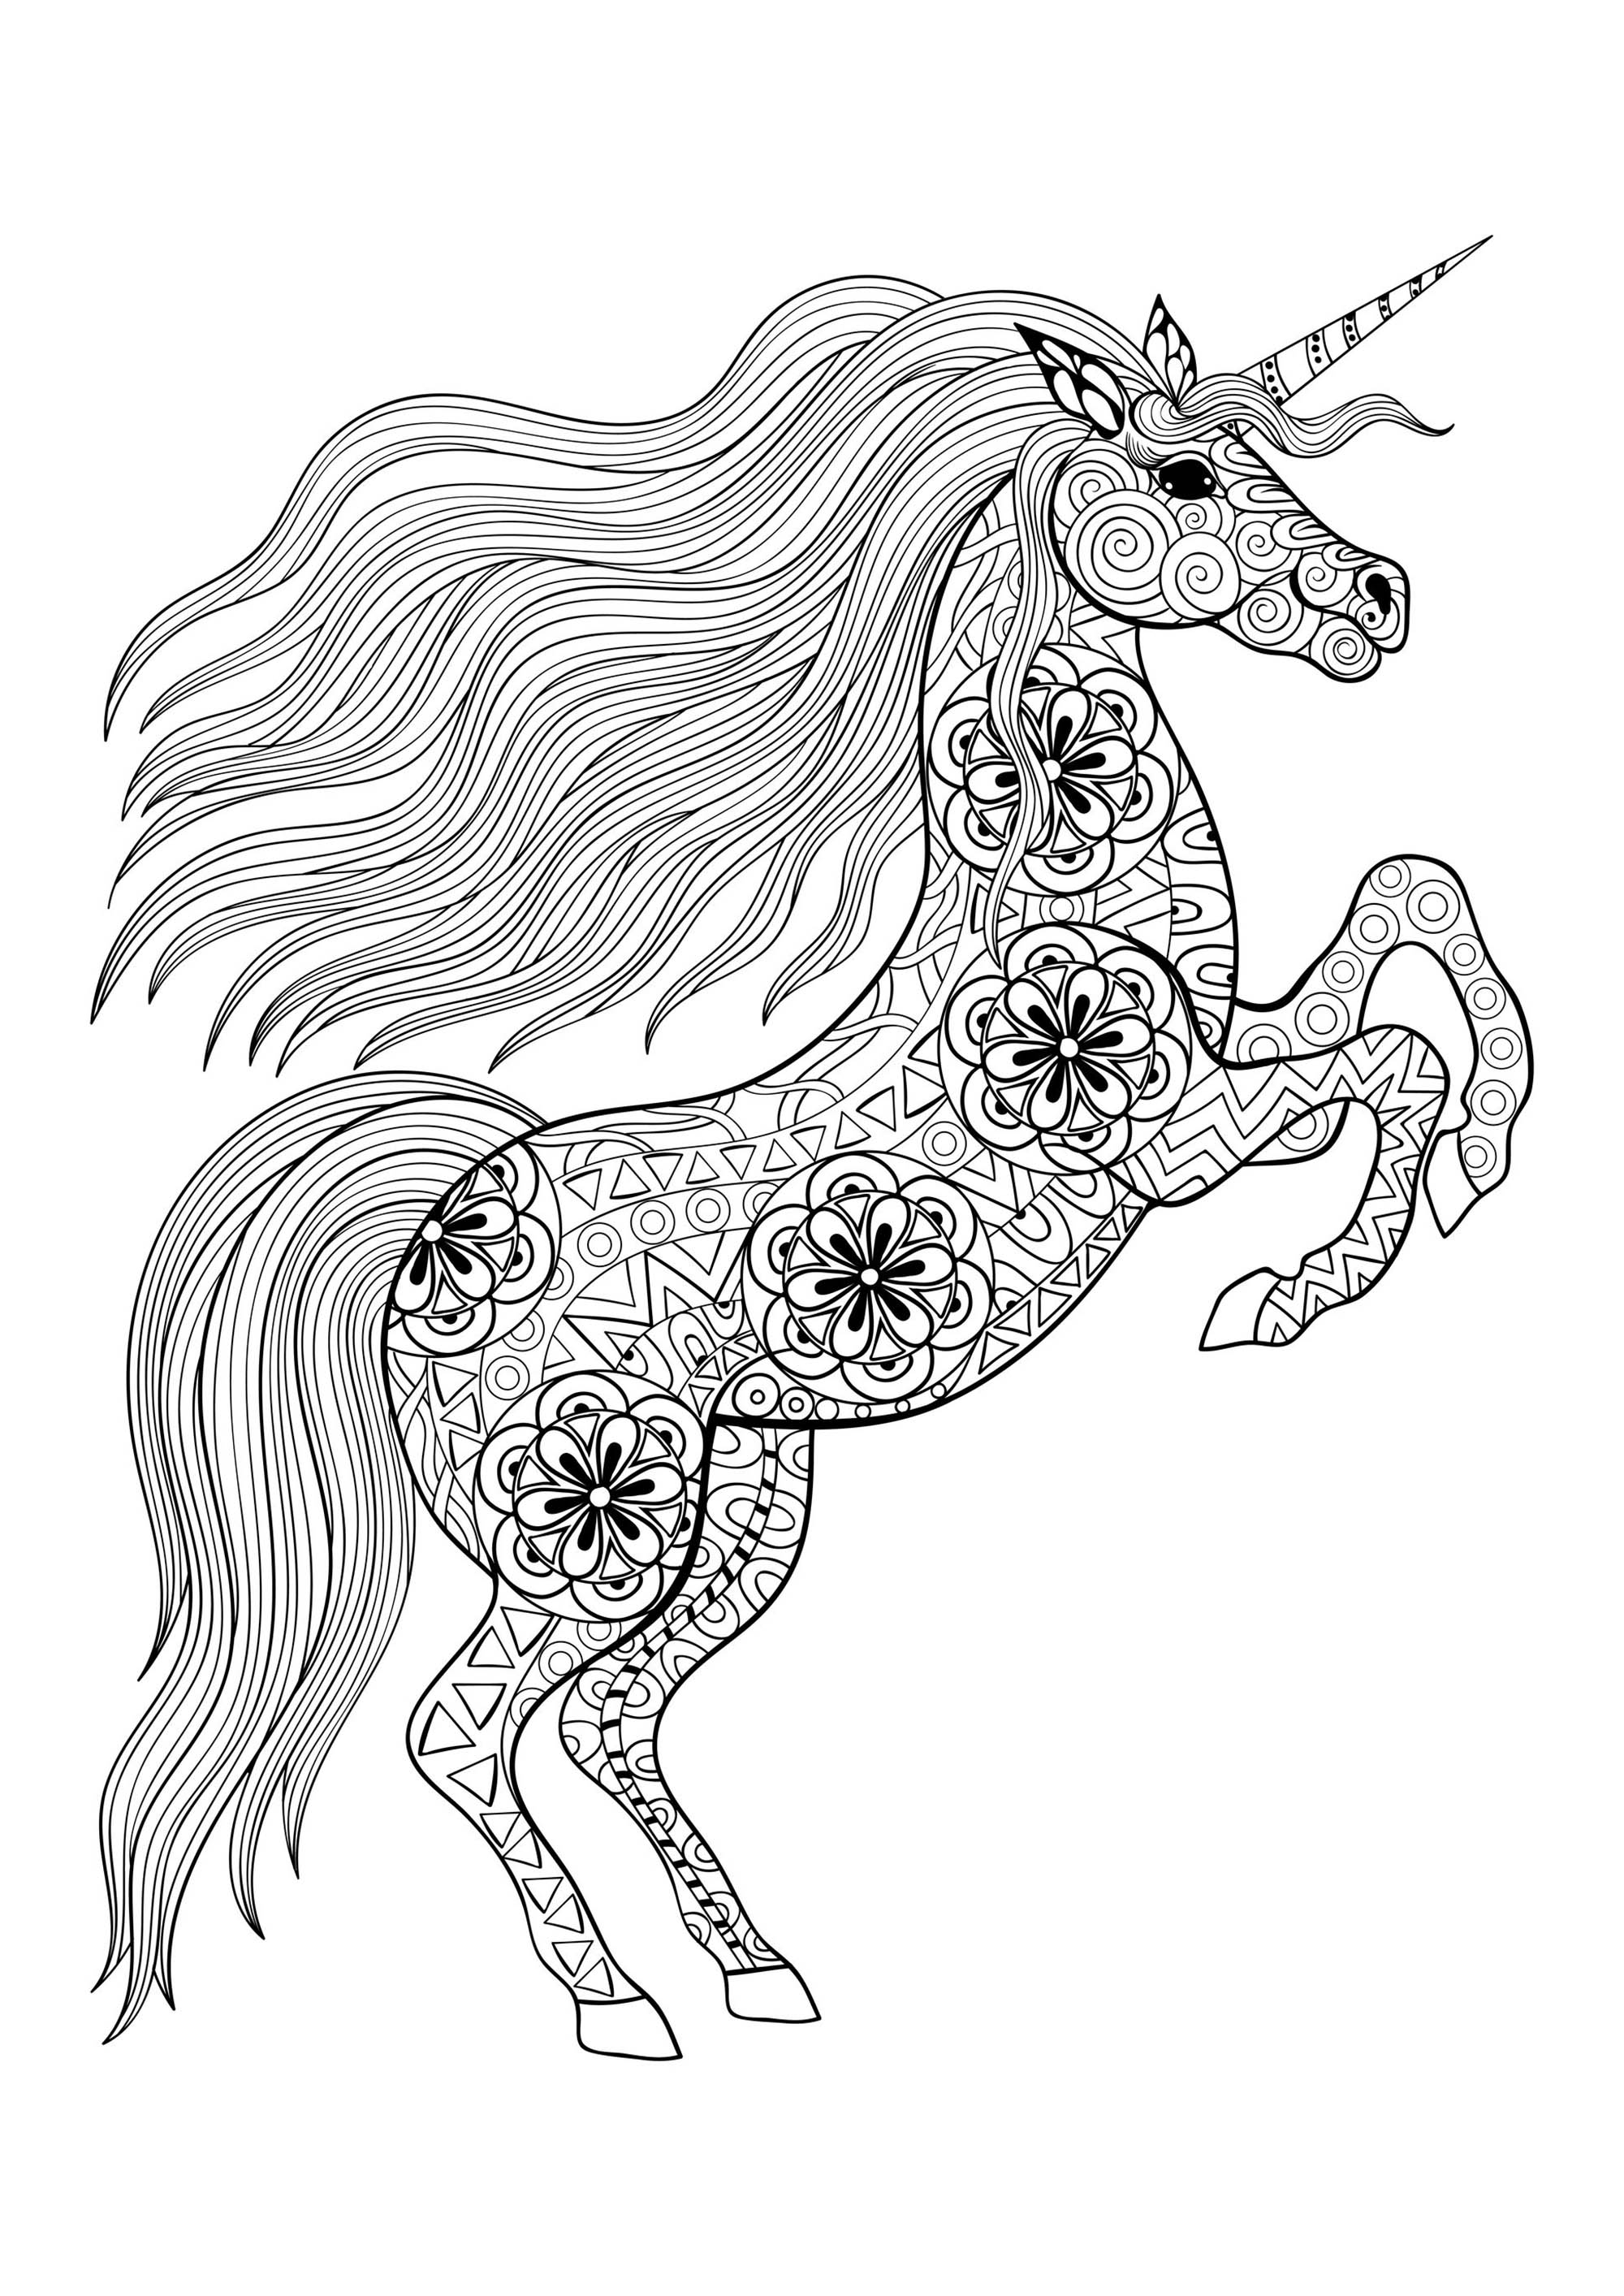 coloring pages of unicorns unicorn coloring pages coloringrocks of unicorns coloring pages